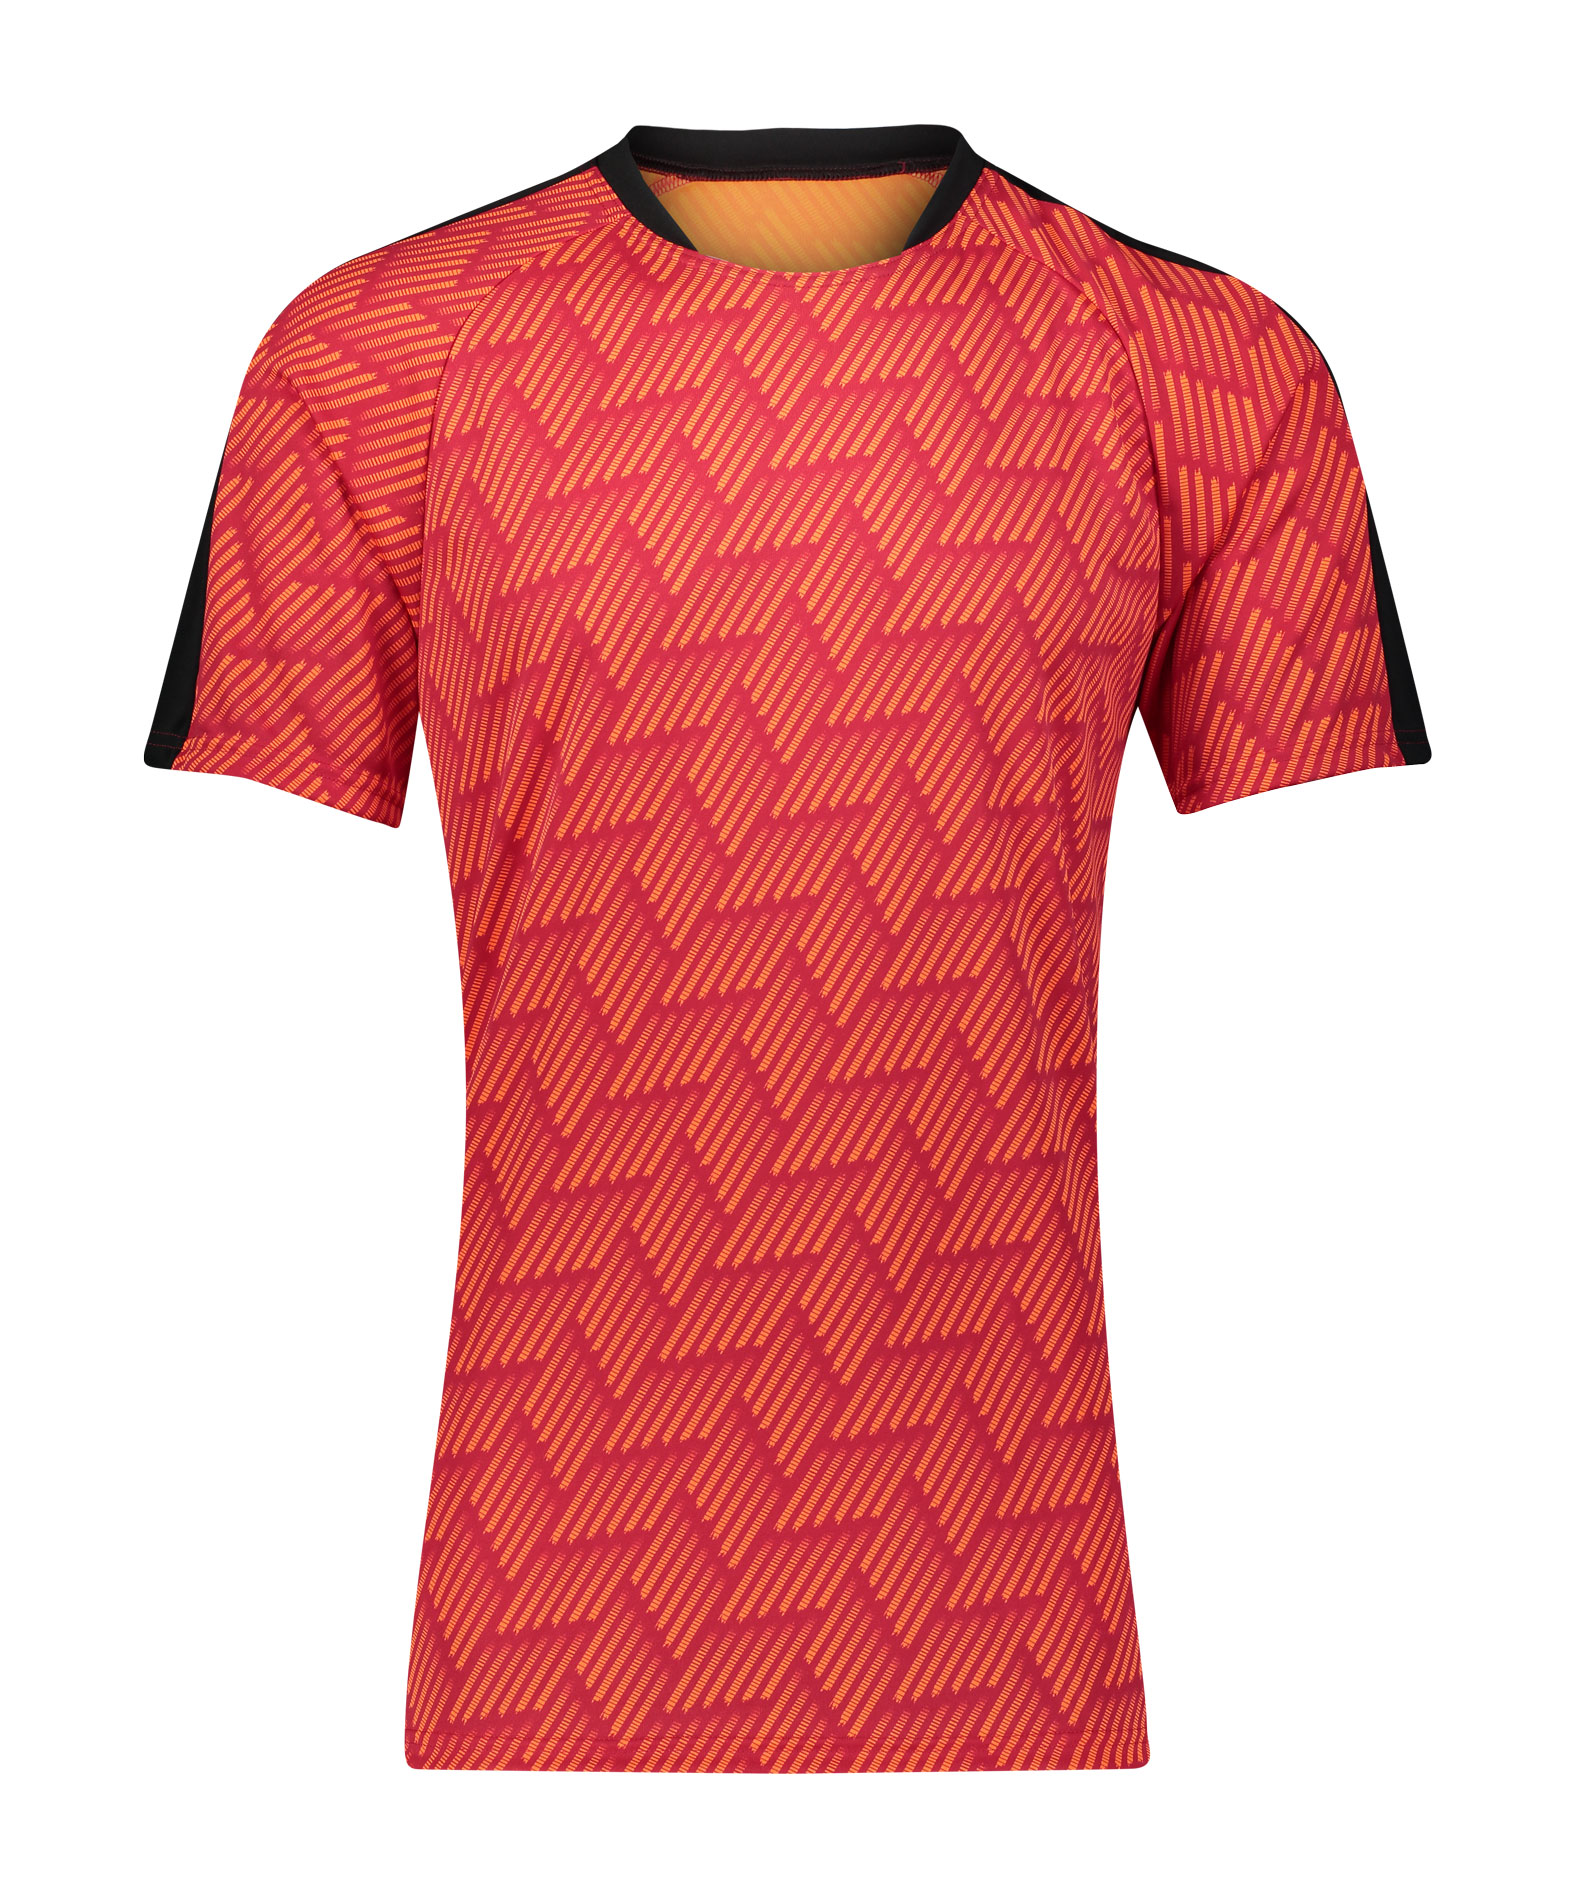 High Five Youth Hypervolt Jersey